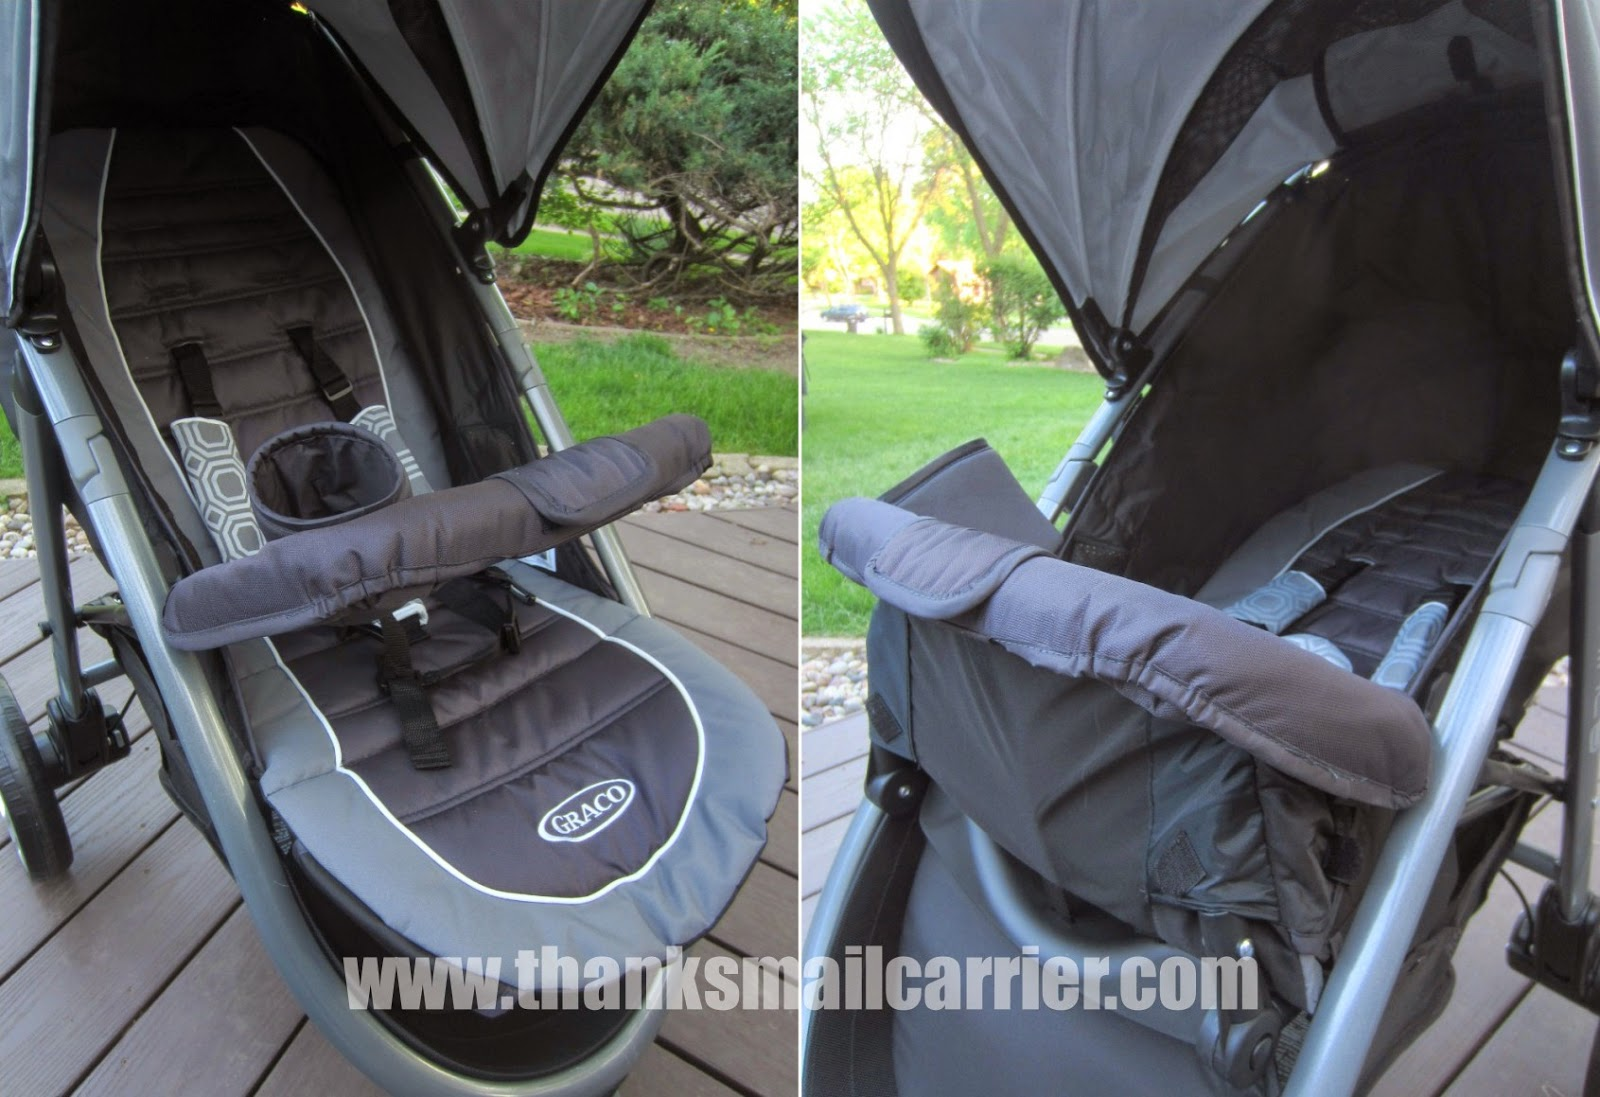 Graco Aire3 infant carriage